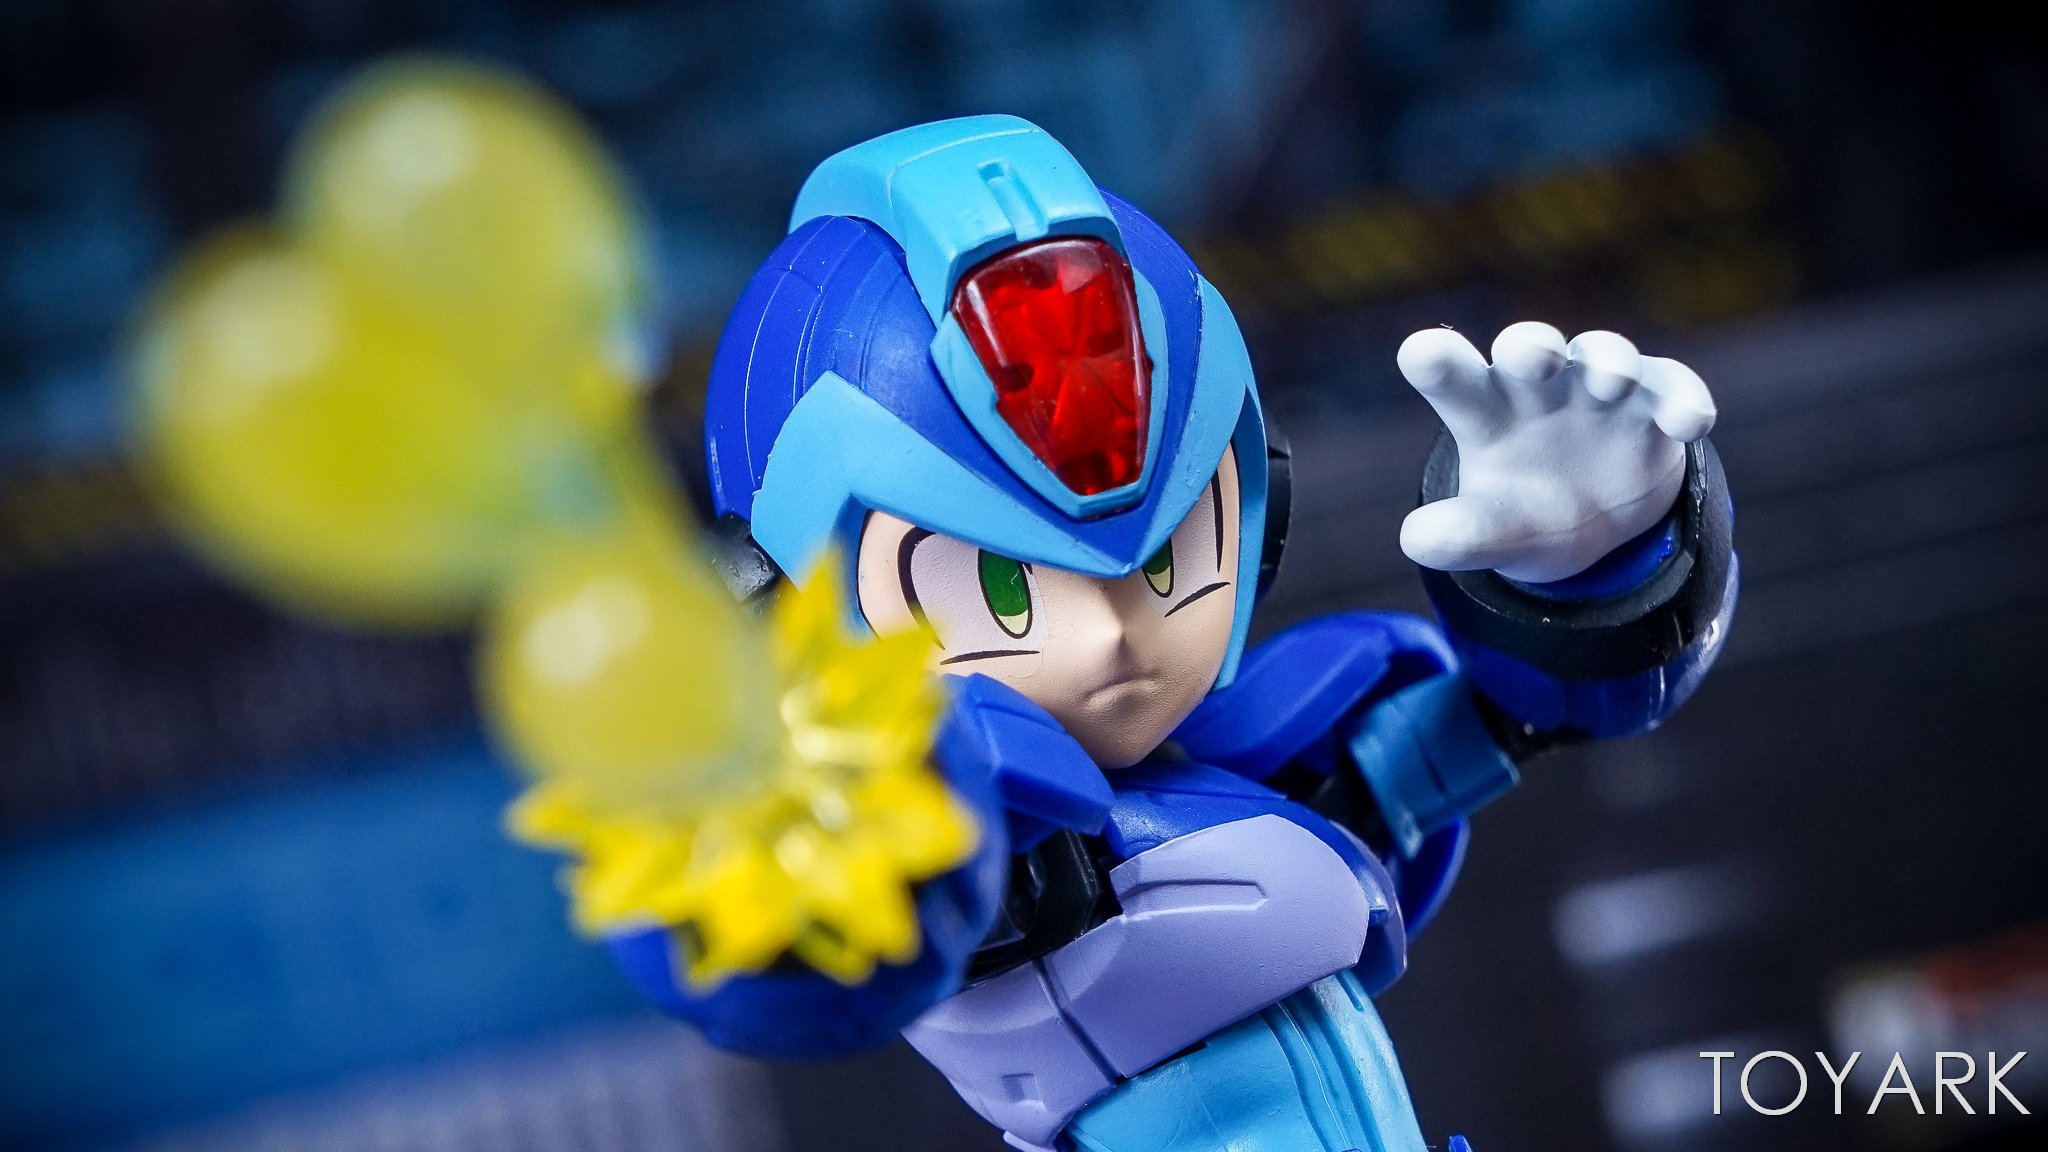 http://news.toyark.com/wp-content/uploads/sites/4/2017/11/Mega-Man-X-NX-Edge-Style-020.jpg